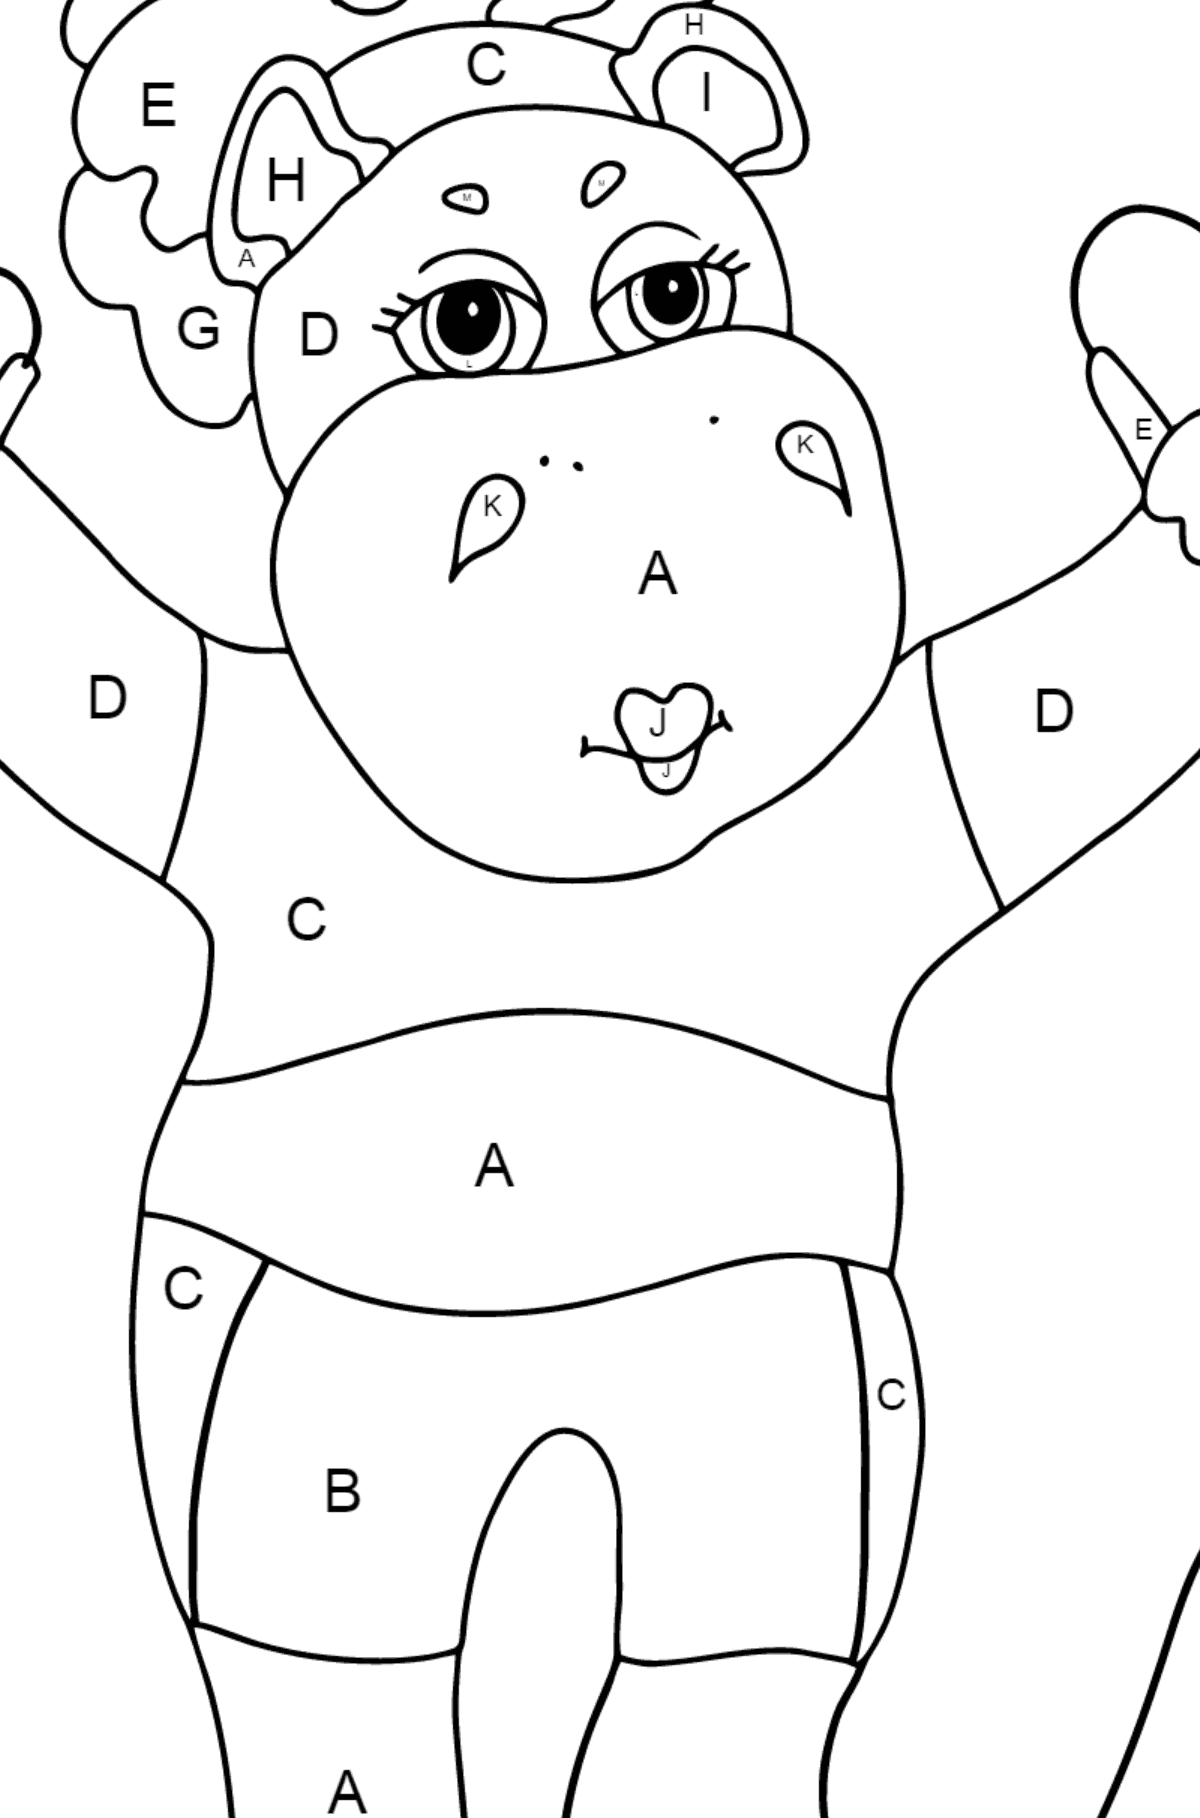 Coloring Page - A Hippo is Jumping on a Rope for Children  - Color by Letters